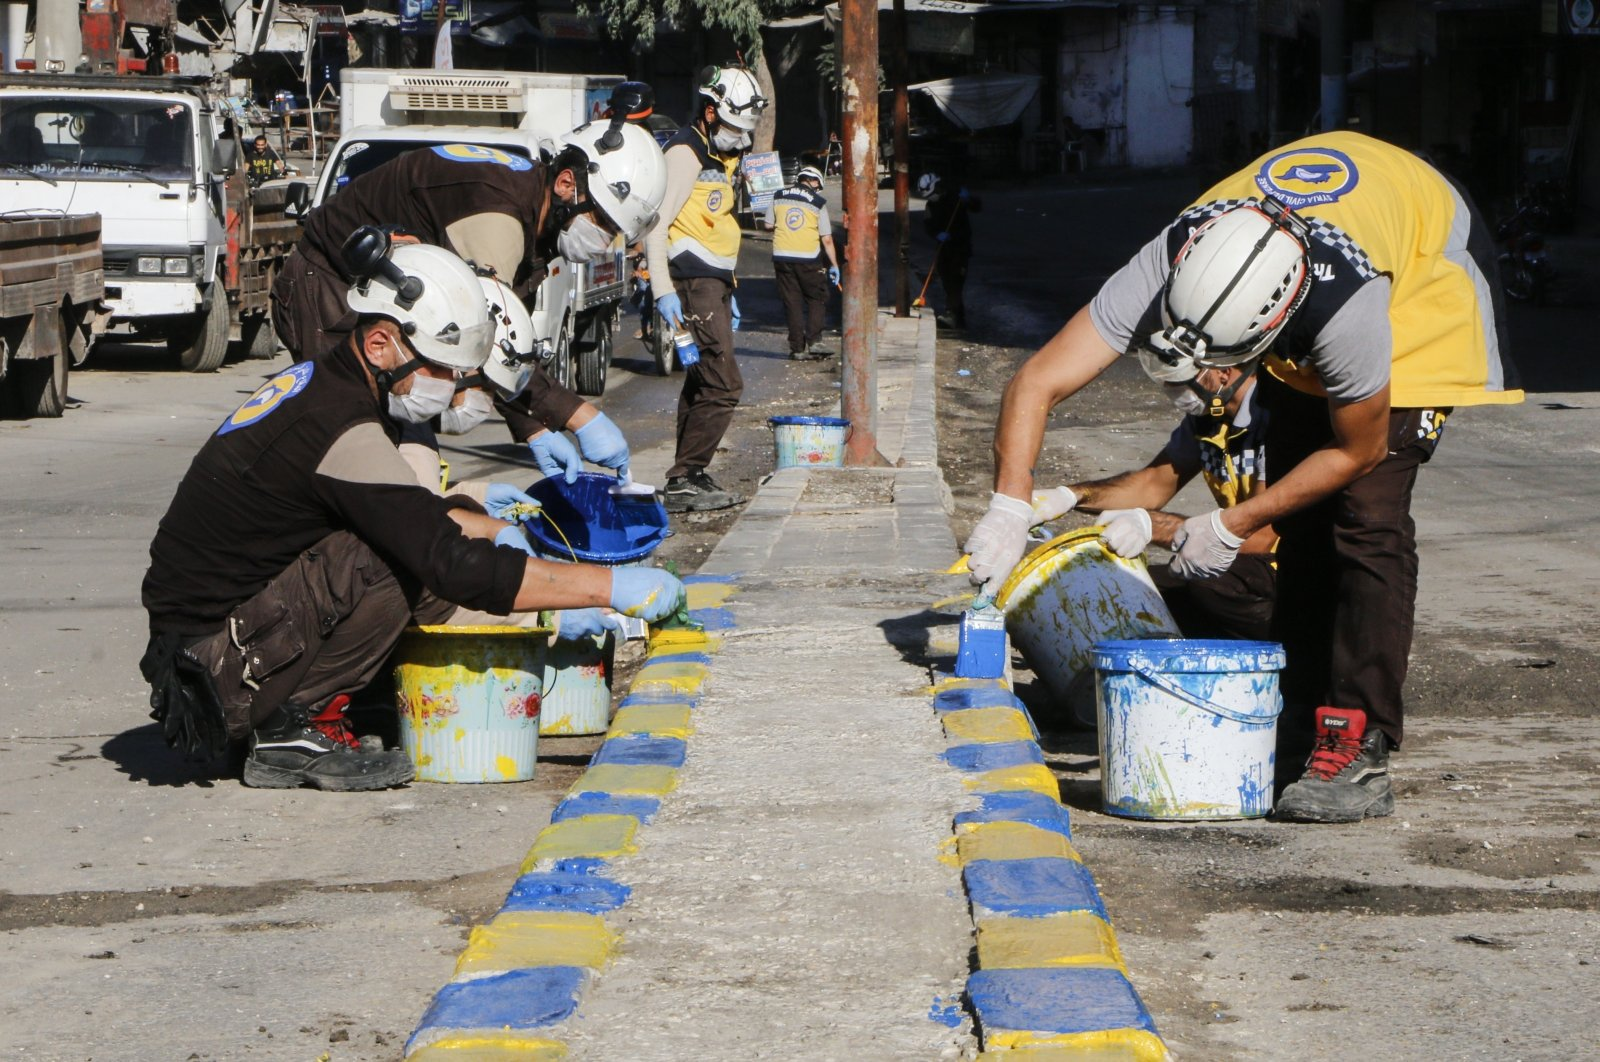 White Helmets volunteers paint flagstones in an effort to beautify streets damaged by Syrian regime attacks, Idlib, Syria, Sept. 24. 2020. (AA)